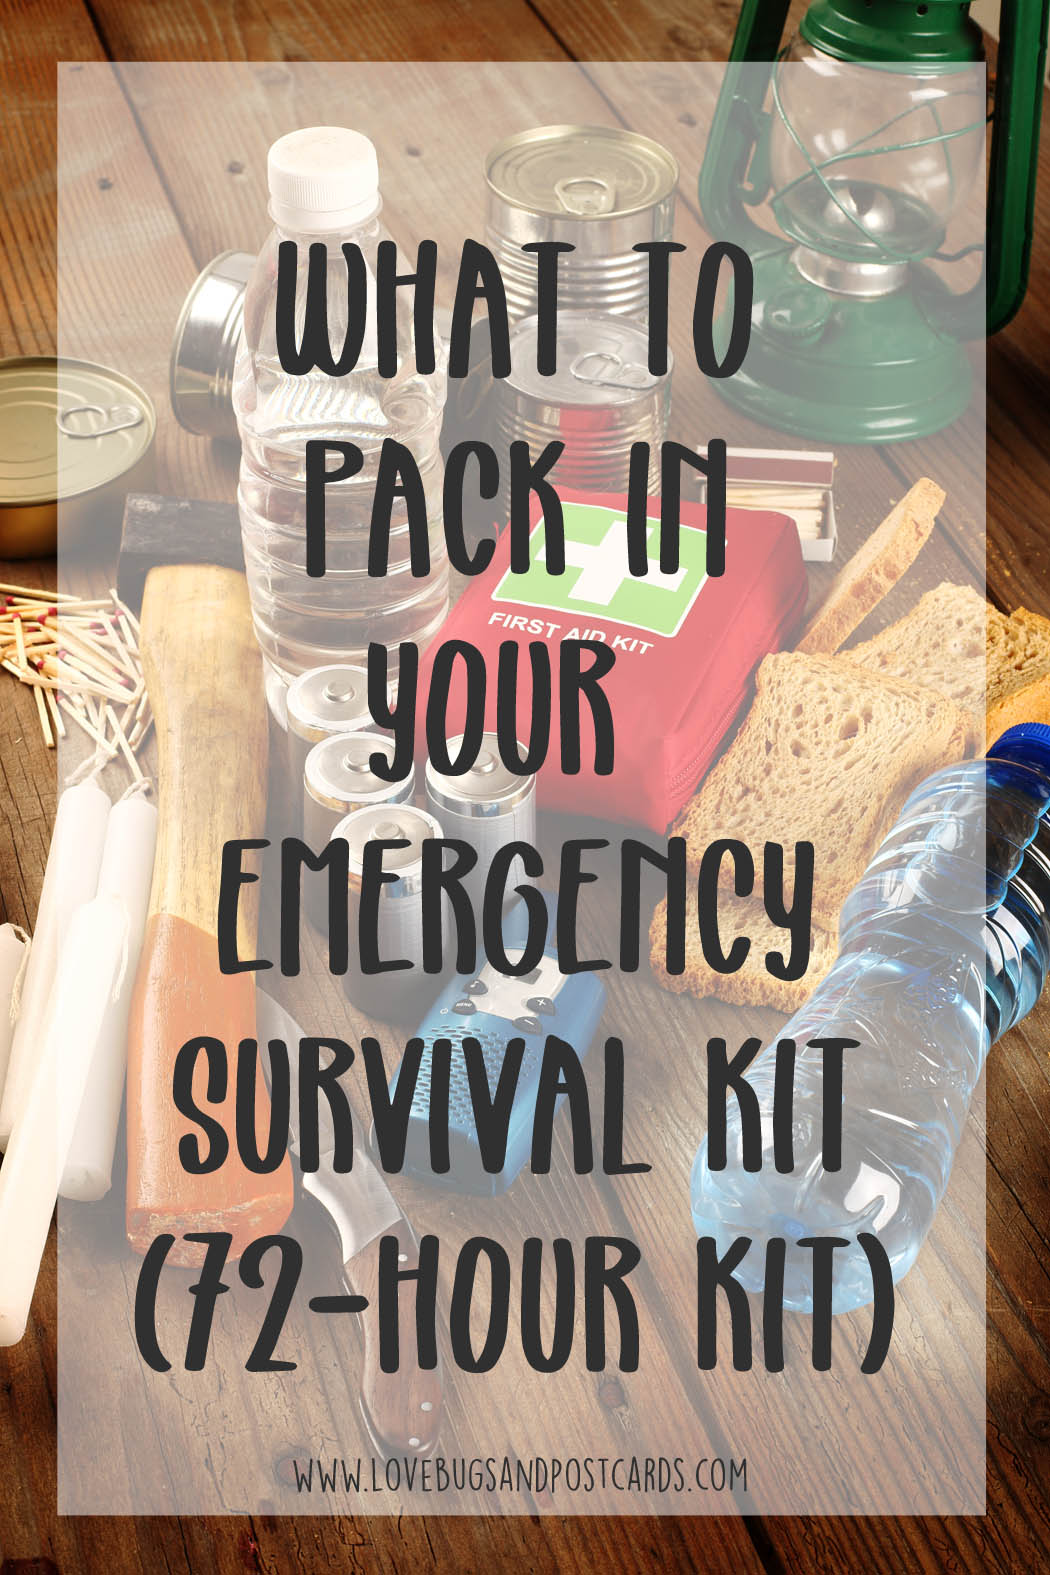 Emergency kit checklist printable (72-hour kit)